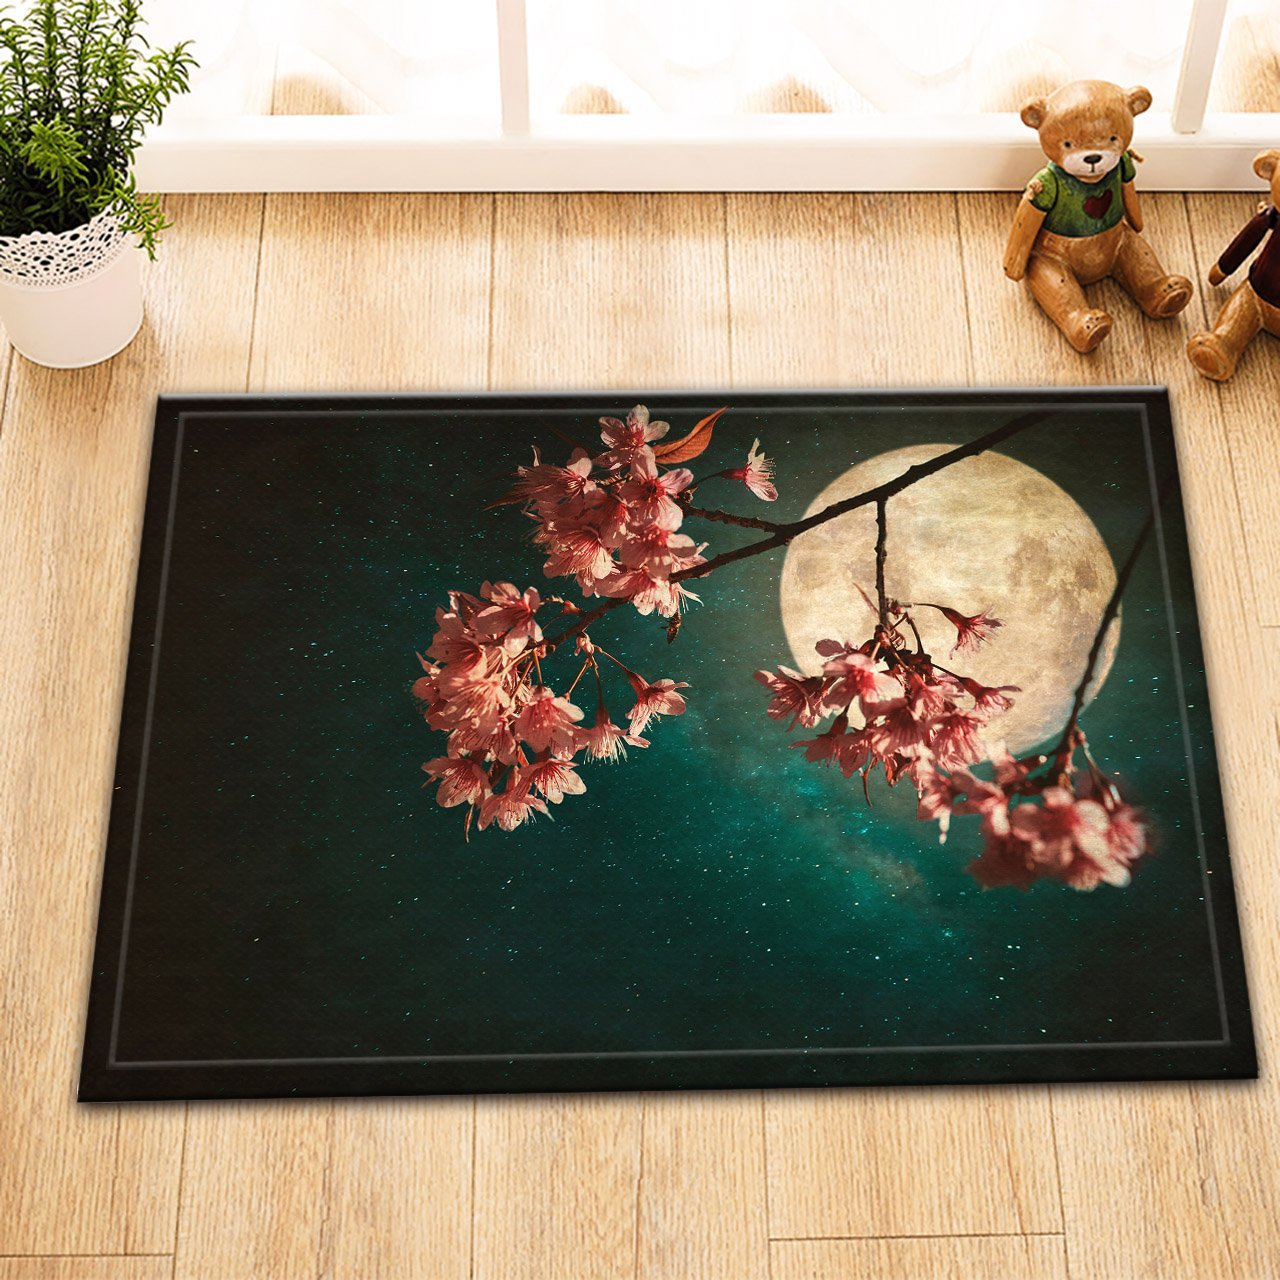 Flowers Bath Mat Antique and vintage style photo - Beautiful pink cherry blossom sakura flowers in night of skies with full moon and milky way stars Washable Door Mat Bathroom Decor Home Accessory 60x40cm JinShiZhuan